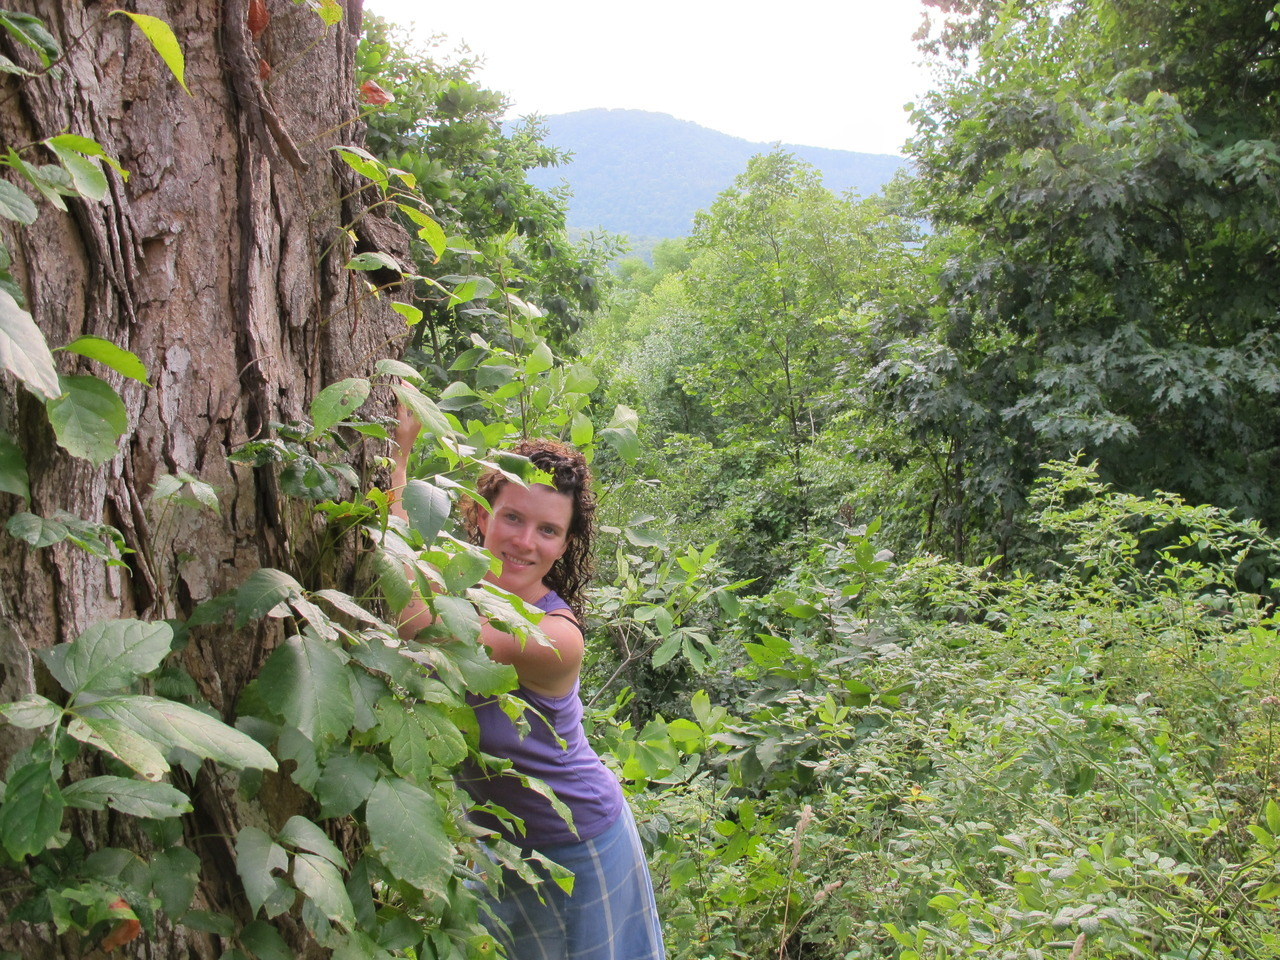 "TREE INTERVIEW WITH IRIS CUSHING               location: Mount Tremper Arts   Do you ever think about trees?  Yes. I think about them, and with them, and because of them. There's a Sappho fragment, translated by Anne Carson: ""Eros shook my mind/like a mountain wind falling on oak trees."" it's like that for me too. My mind, beyond its thinking: erotic, shaking.   What is a vivid/significant memory you have involving a tree or trees?   I'm having one right now—breathing. Cottonwoods, ponderosa pines, eucalyptus, junipers and oaks.    Are trees involved at all in your writing or worldview?  Yes. The term ""knock on wood"" dates back to pagan times: in Scandanavia, folks believed that there were mischievious spirits that lived inside the trees, who liked to meddle with people's business. So when they were saying aloud something they wanted, they'd knock on the nearest tree so that the spirit in the tree literally couldn't hear what they were saying. In my poems, I would like to do the opposite of knocking on wood.   —- Iris Marble Cushing was born in Tarzana, CA. In 2011, she was a writer-in-residence at Grand Canyon National Park in Arizona. Her poems have appeared in the Boston Review and other places. She works as an editor for Argos Books and is a writing tutor at Columbia University.   Go Green and Read an Iris Cushing poem: http://www.twoseriousladies.org/three-poems-by-iris-cushing/"